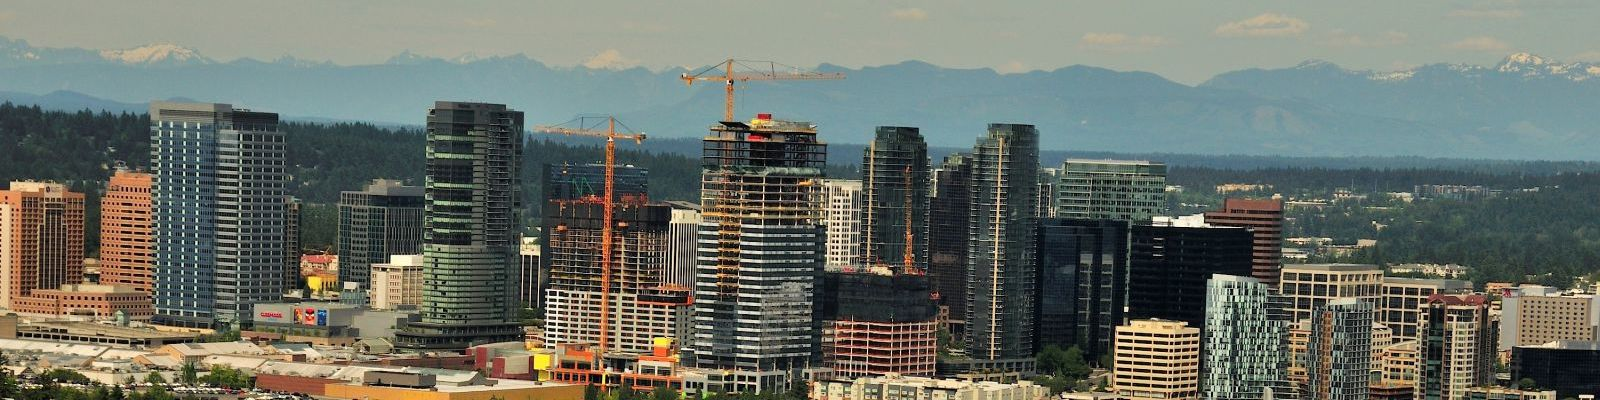 downtown-skyline-1600x400.jpg